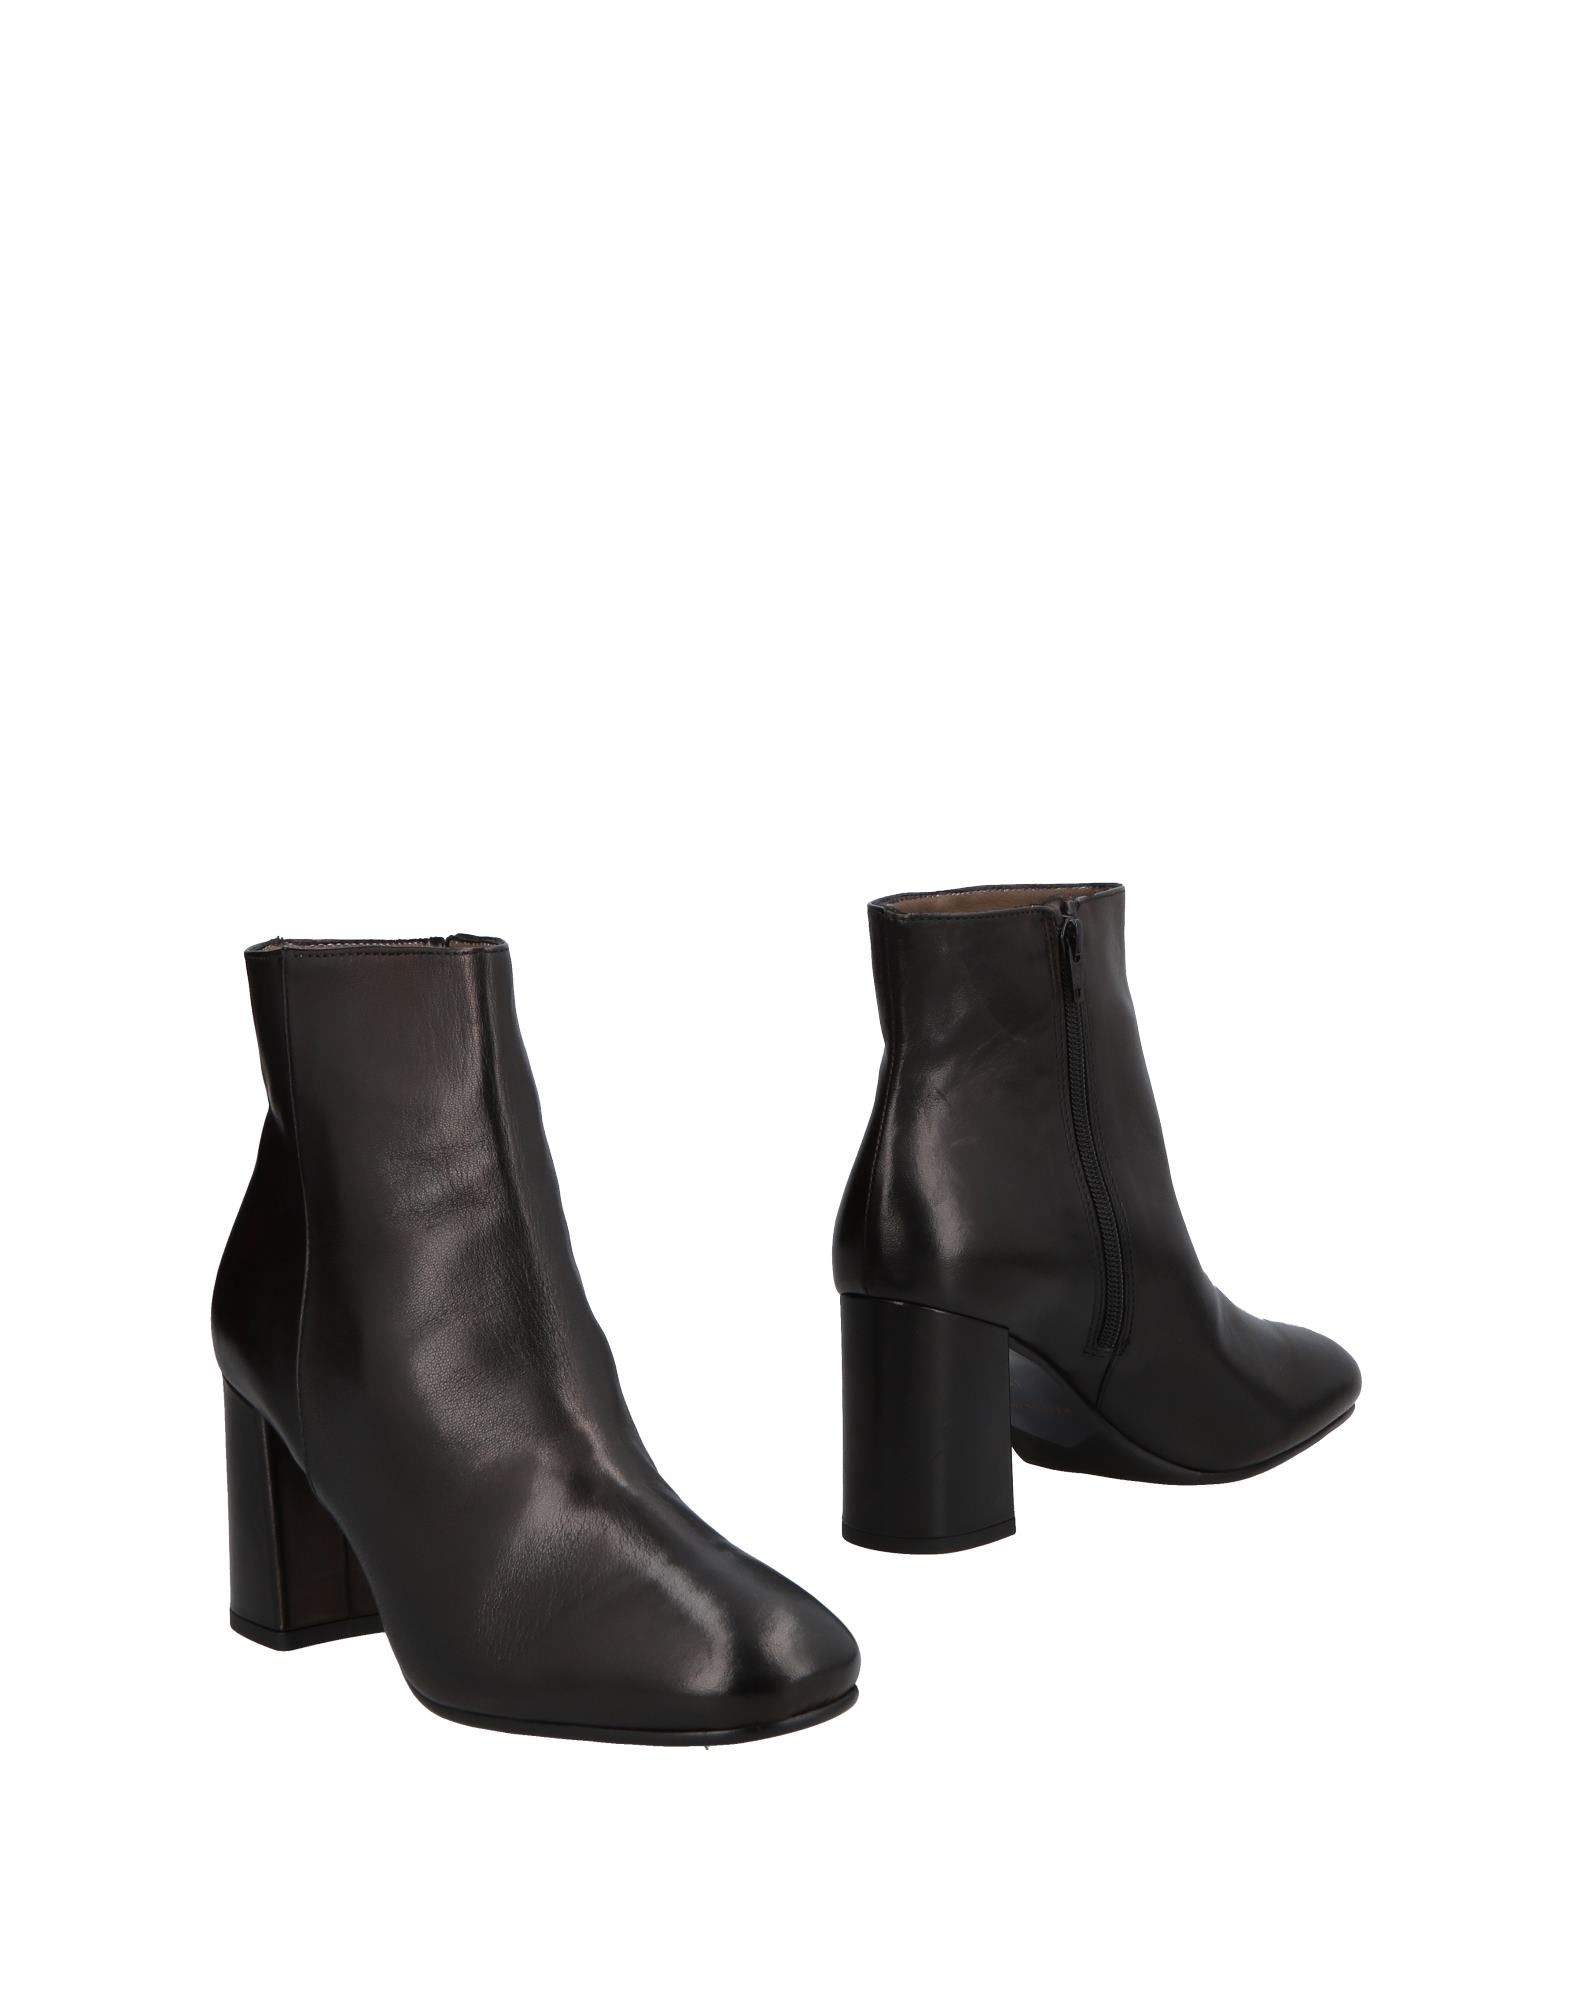 Michael Dass Ankle Boot Ankle - Women Michael Dass Ankle Boot Boots online on  Australia - 11498550NJ 2e0120